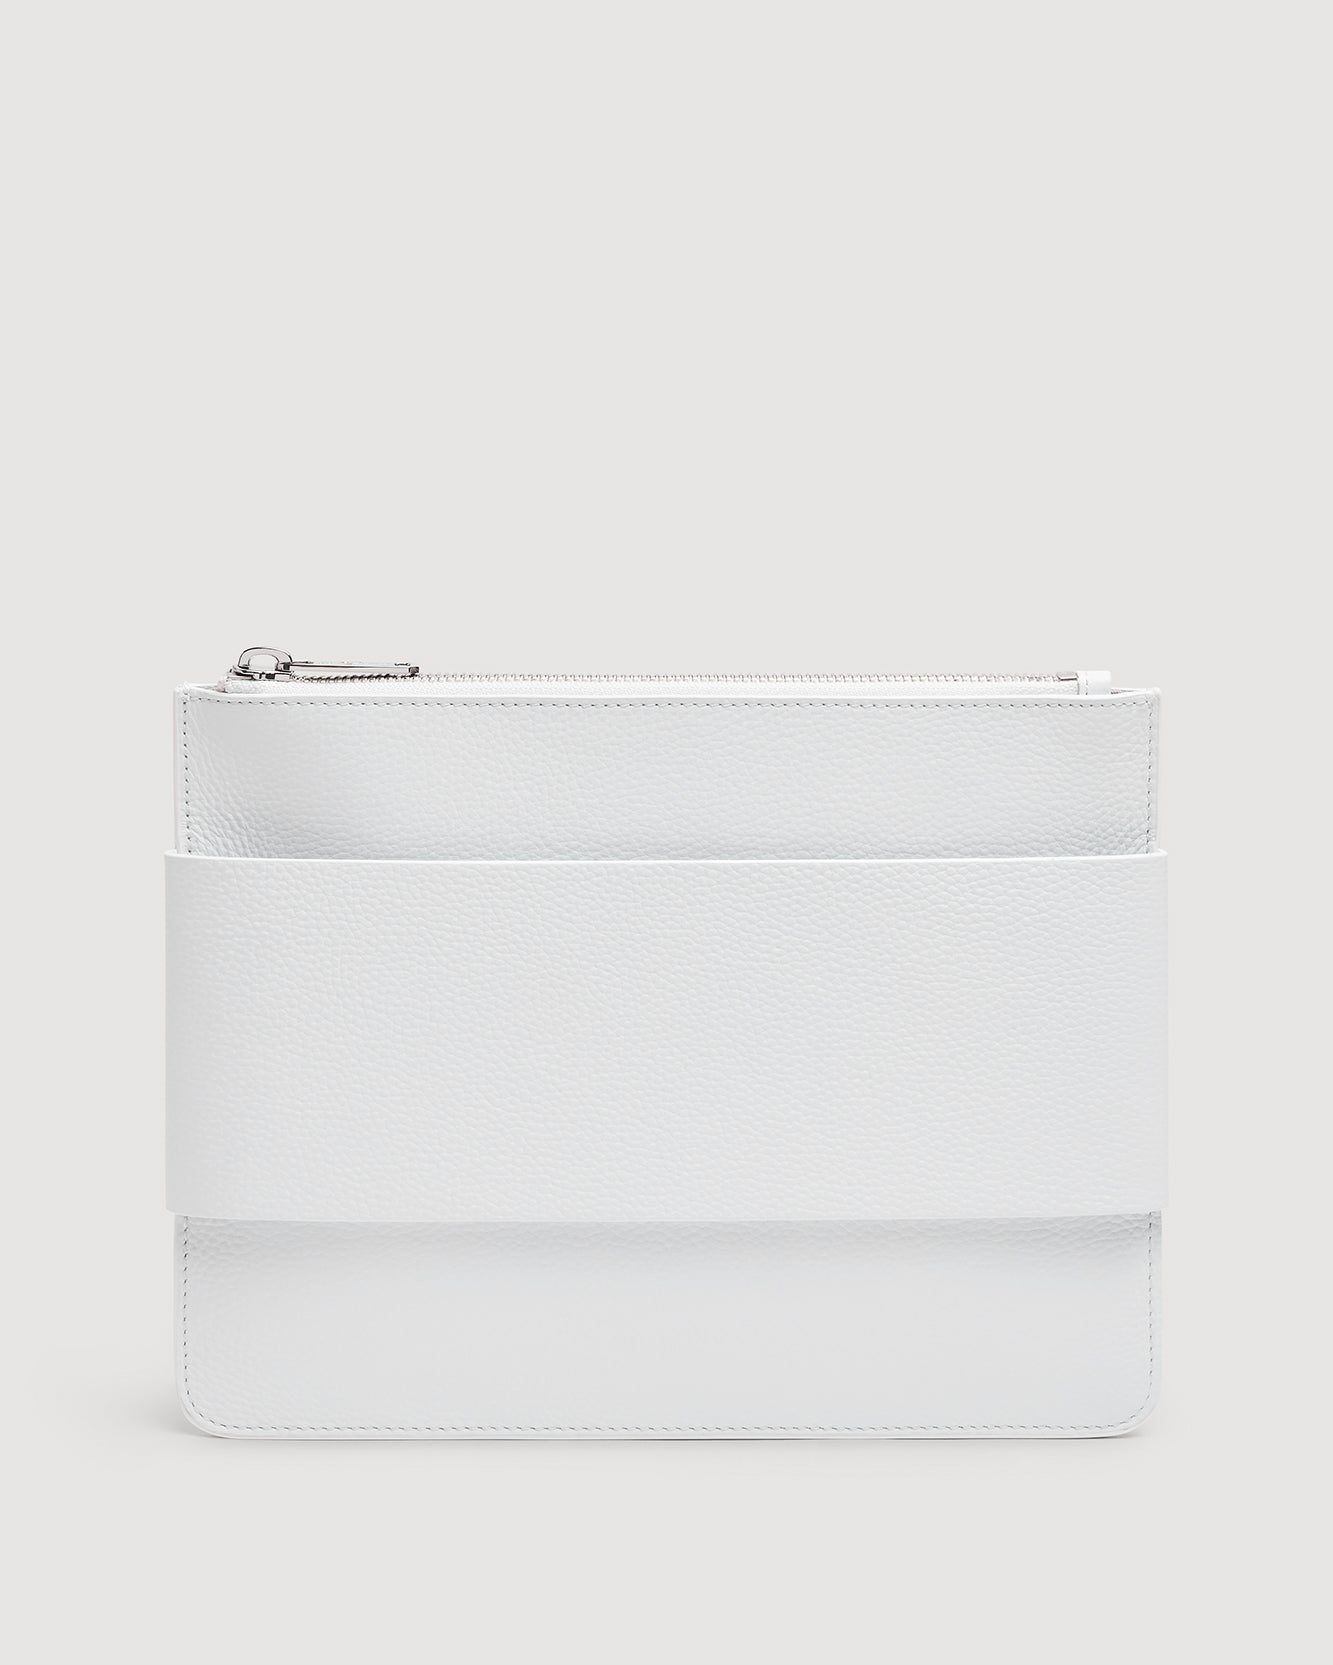 Image of Mankind Clutch in White